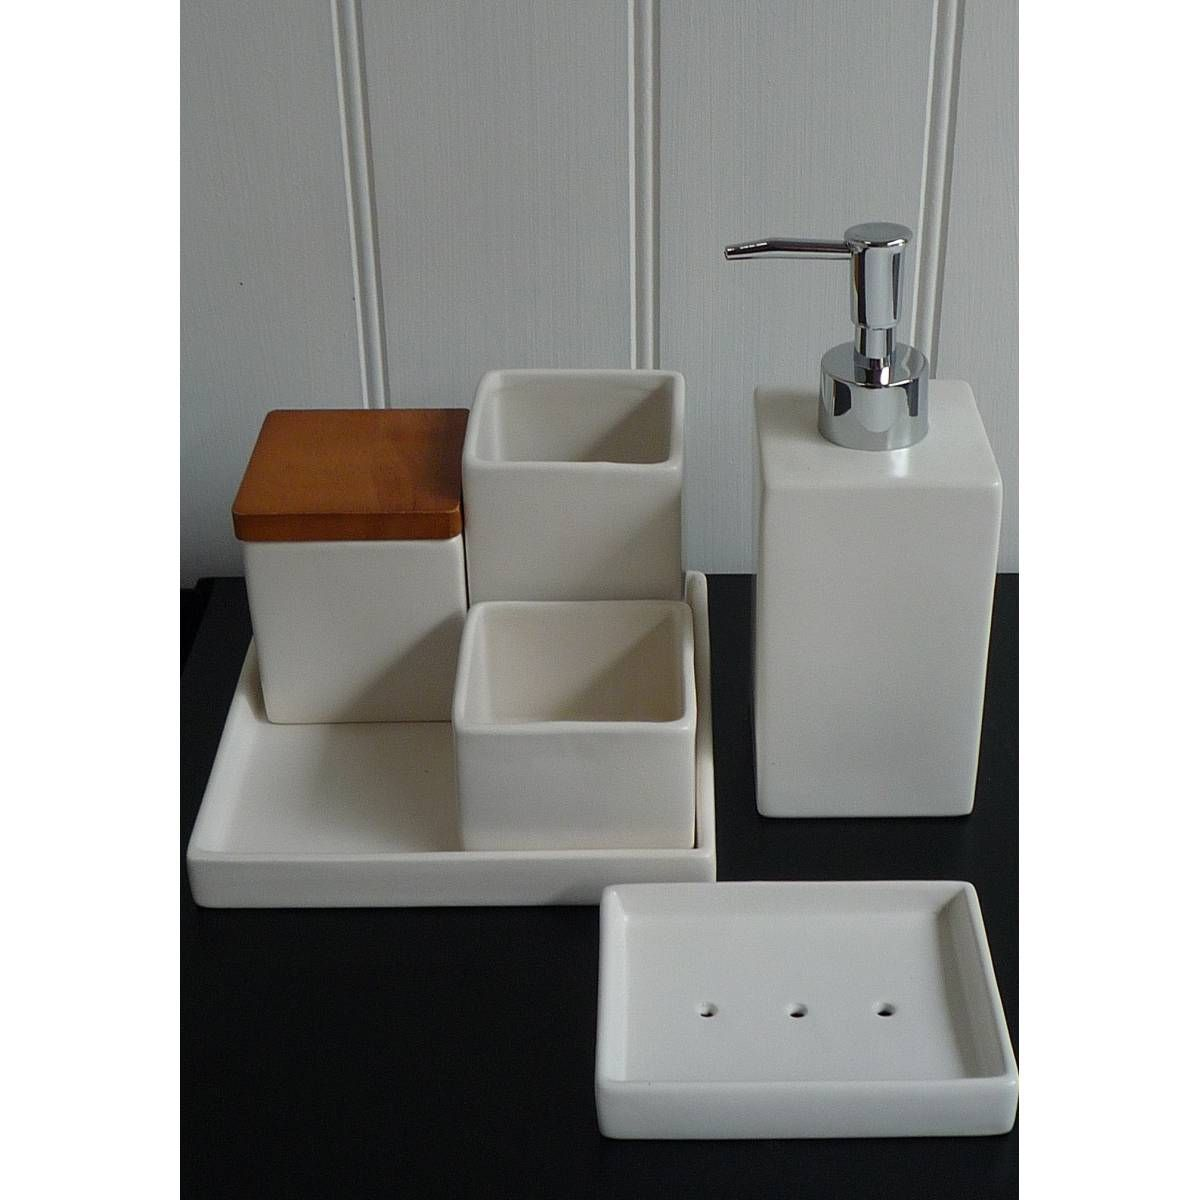 bathroom sets uk bathroom trendsbathroom setsbathroom accessories setswhite ceramicswinter white - White Bathroom Accessories Ceramic